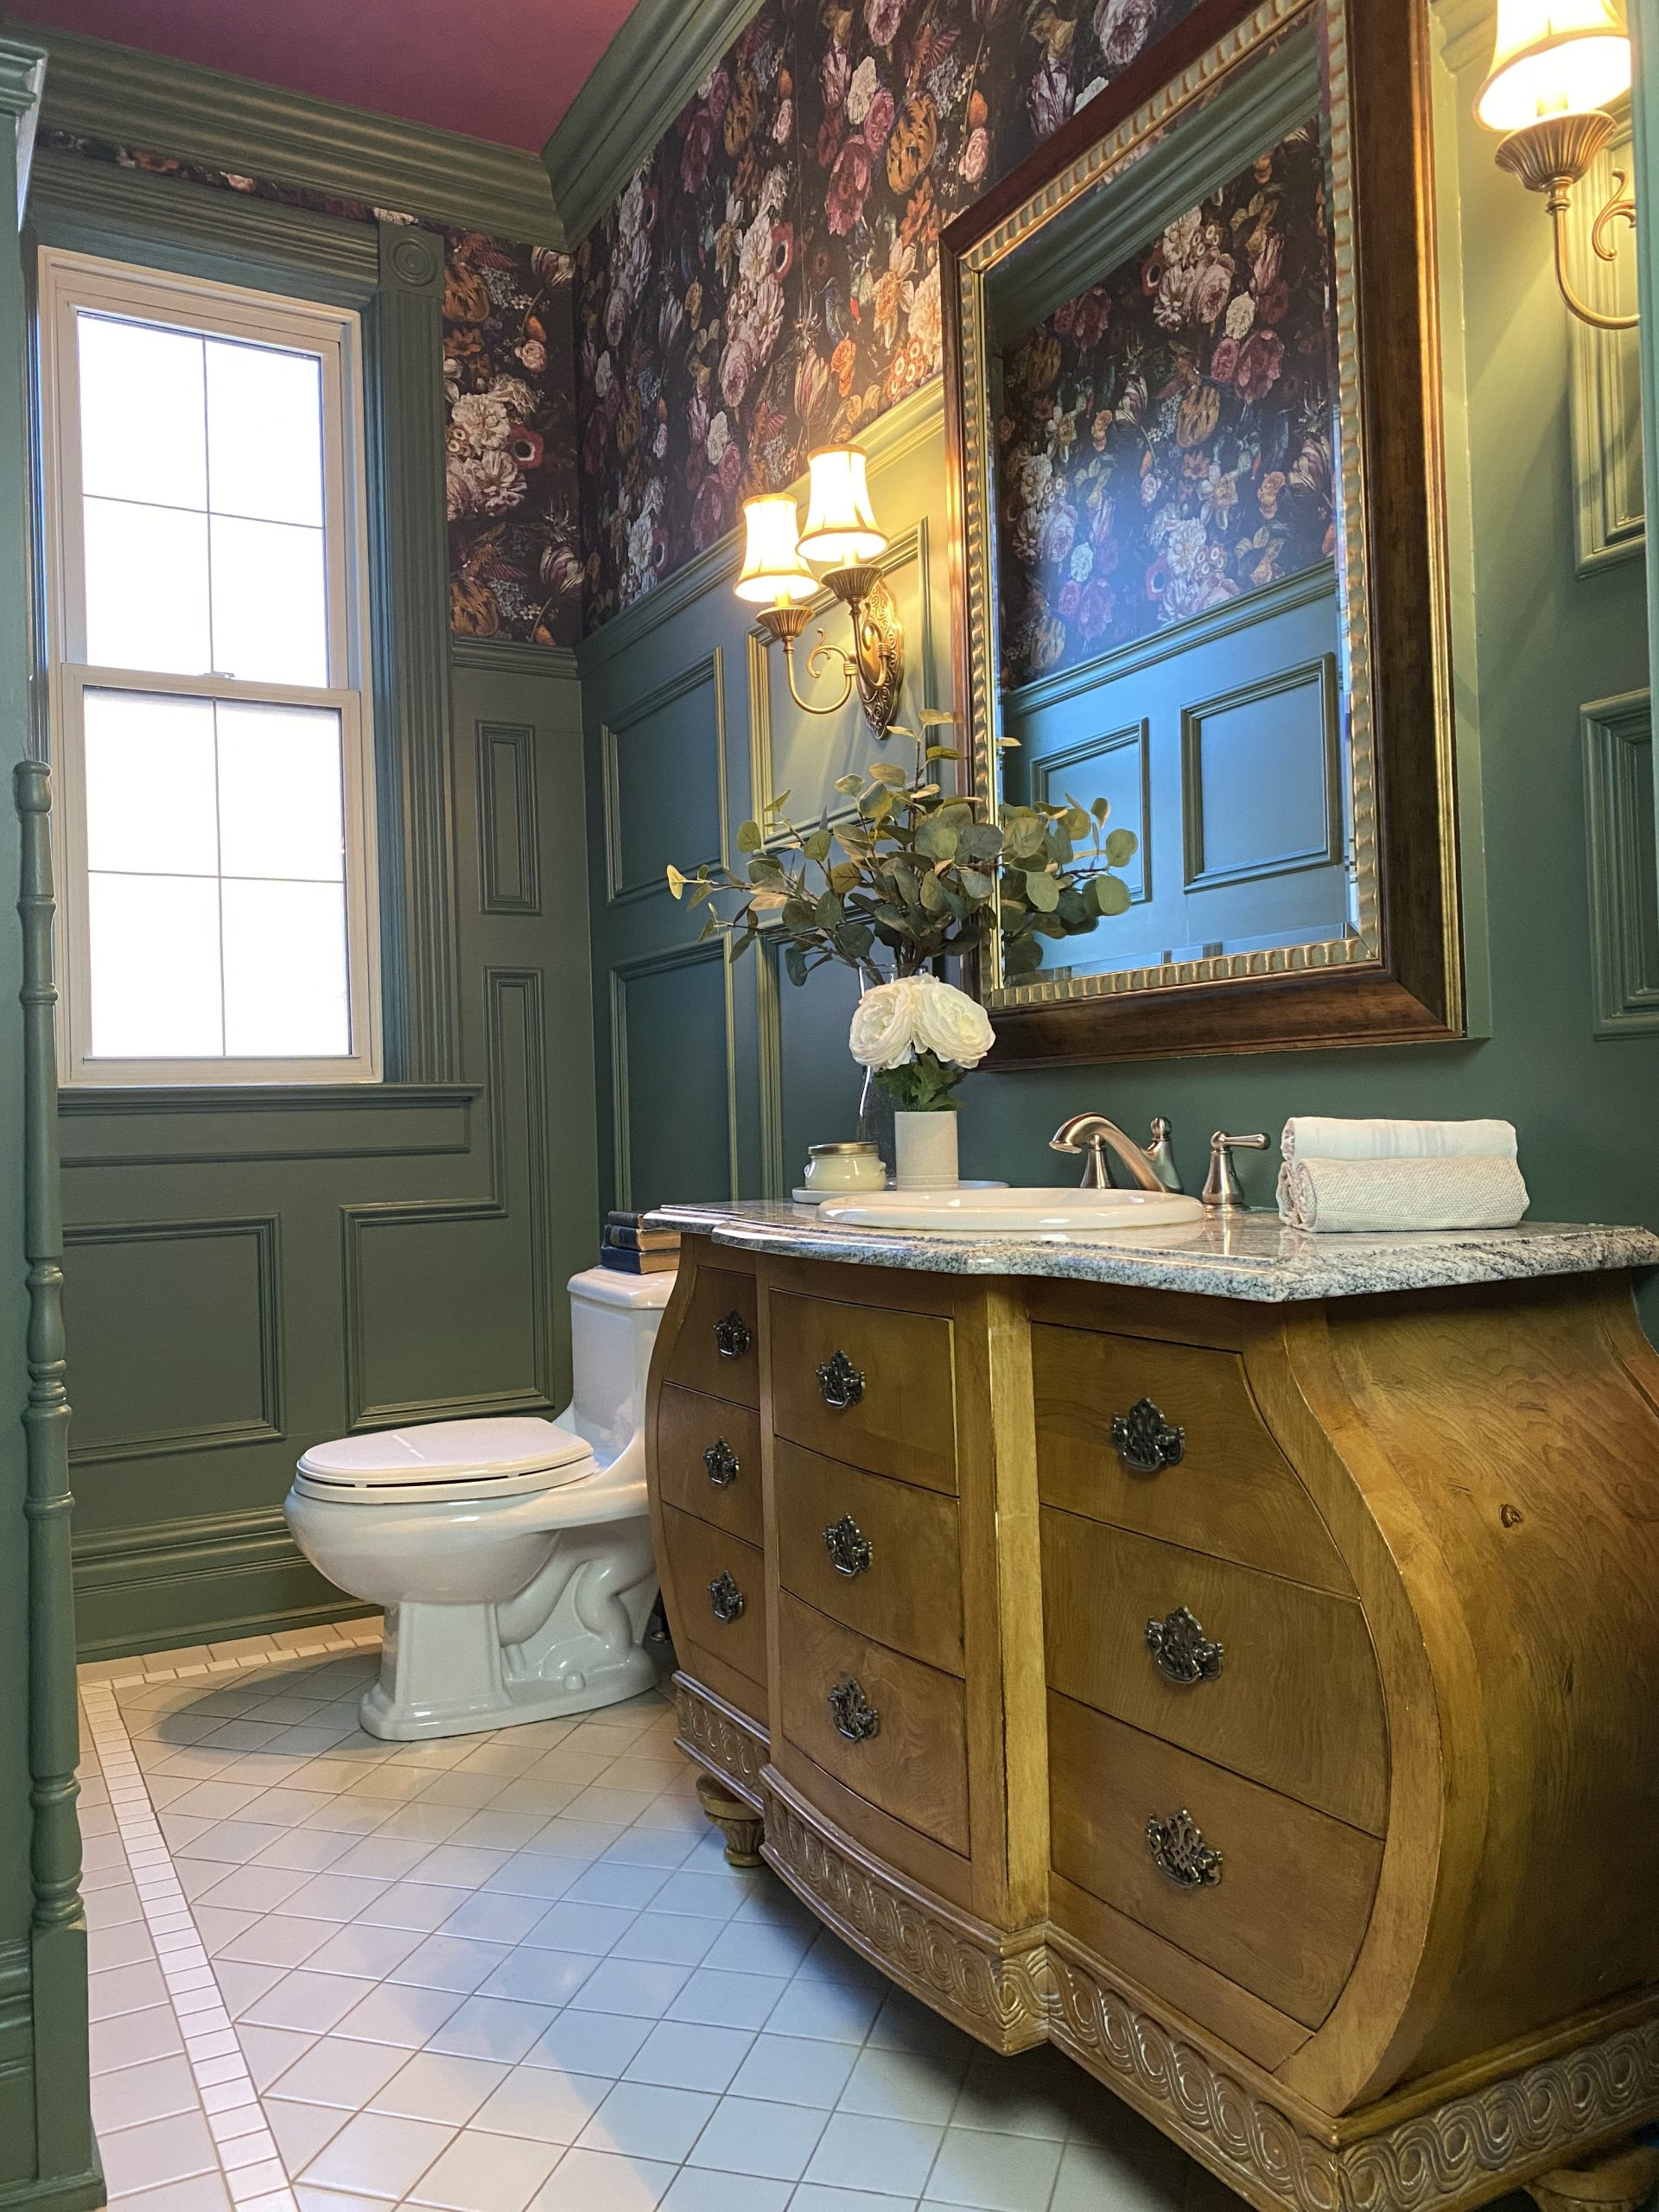 This green and floral powder room by Windsor based interior designer is a stunner